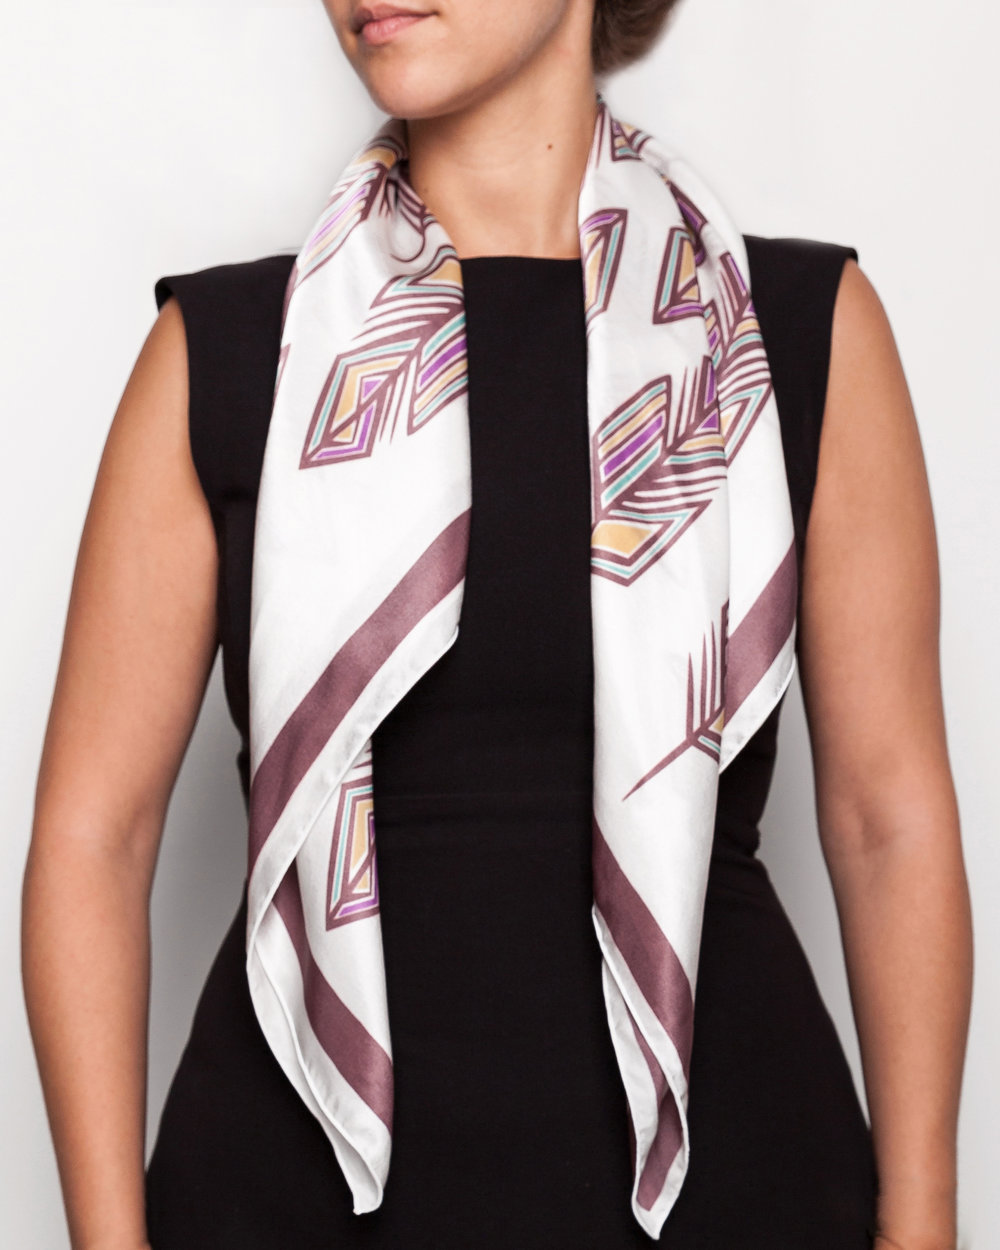 Patrick Hunter Eagle Feather Scarf copy.jpg